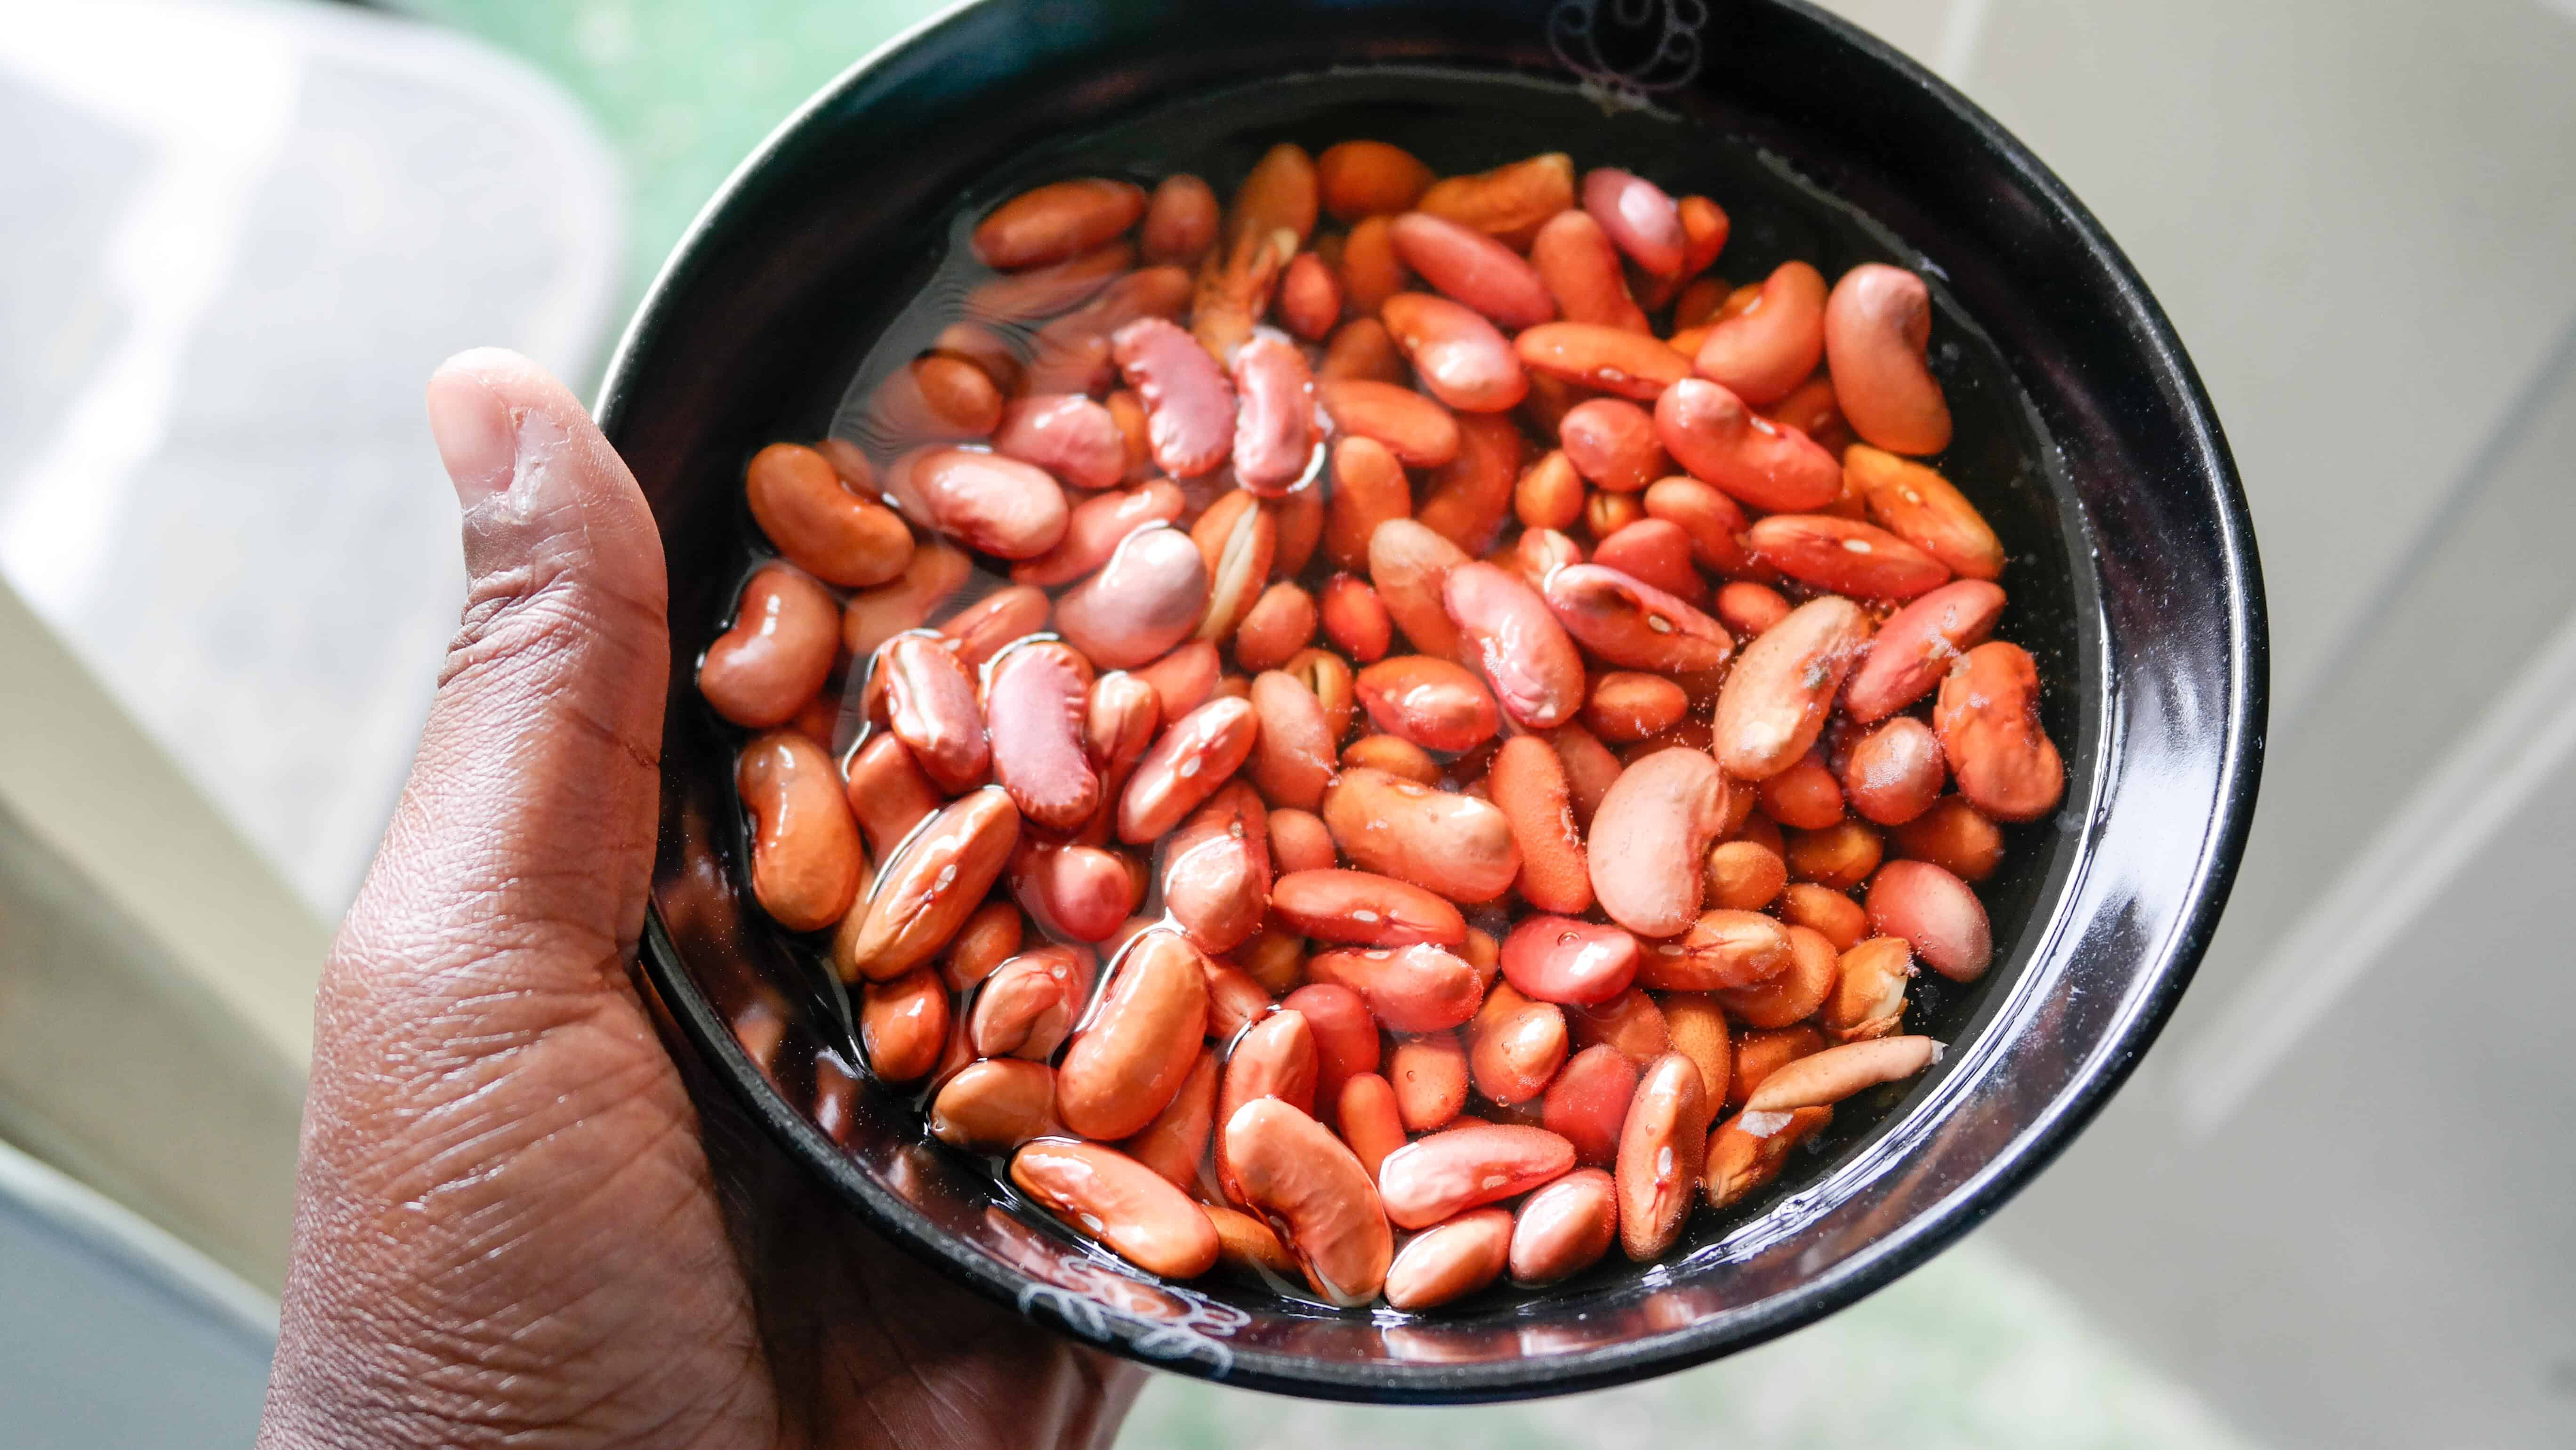 red beans for rice and peas after they have soaked for 6 hours